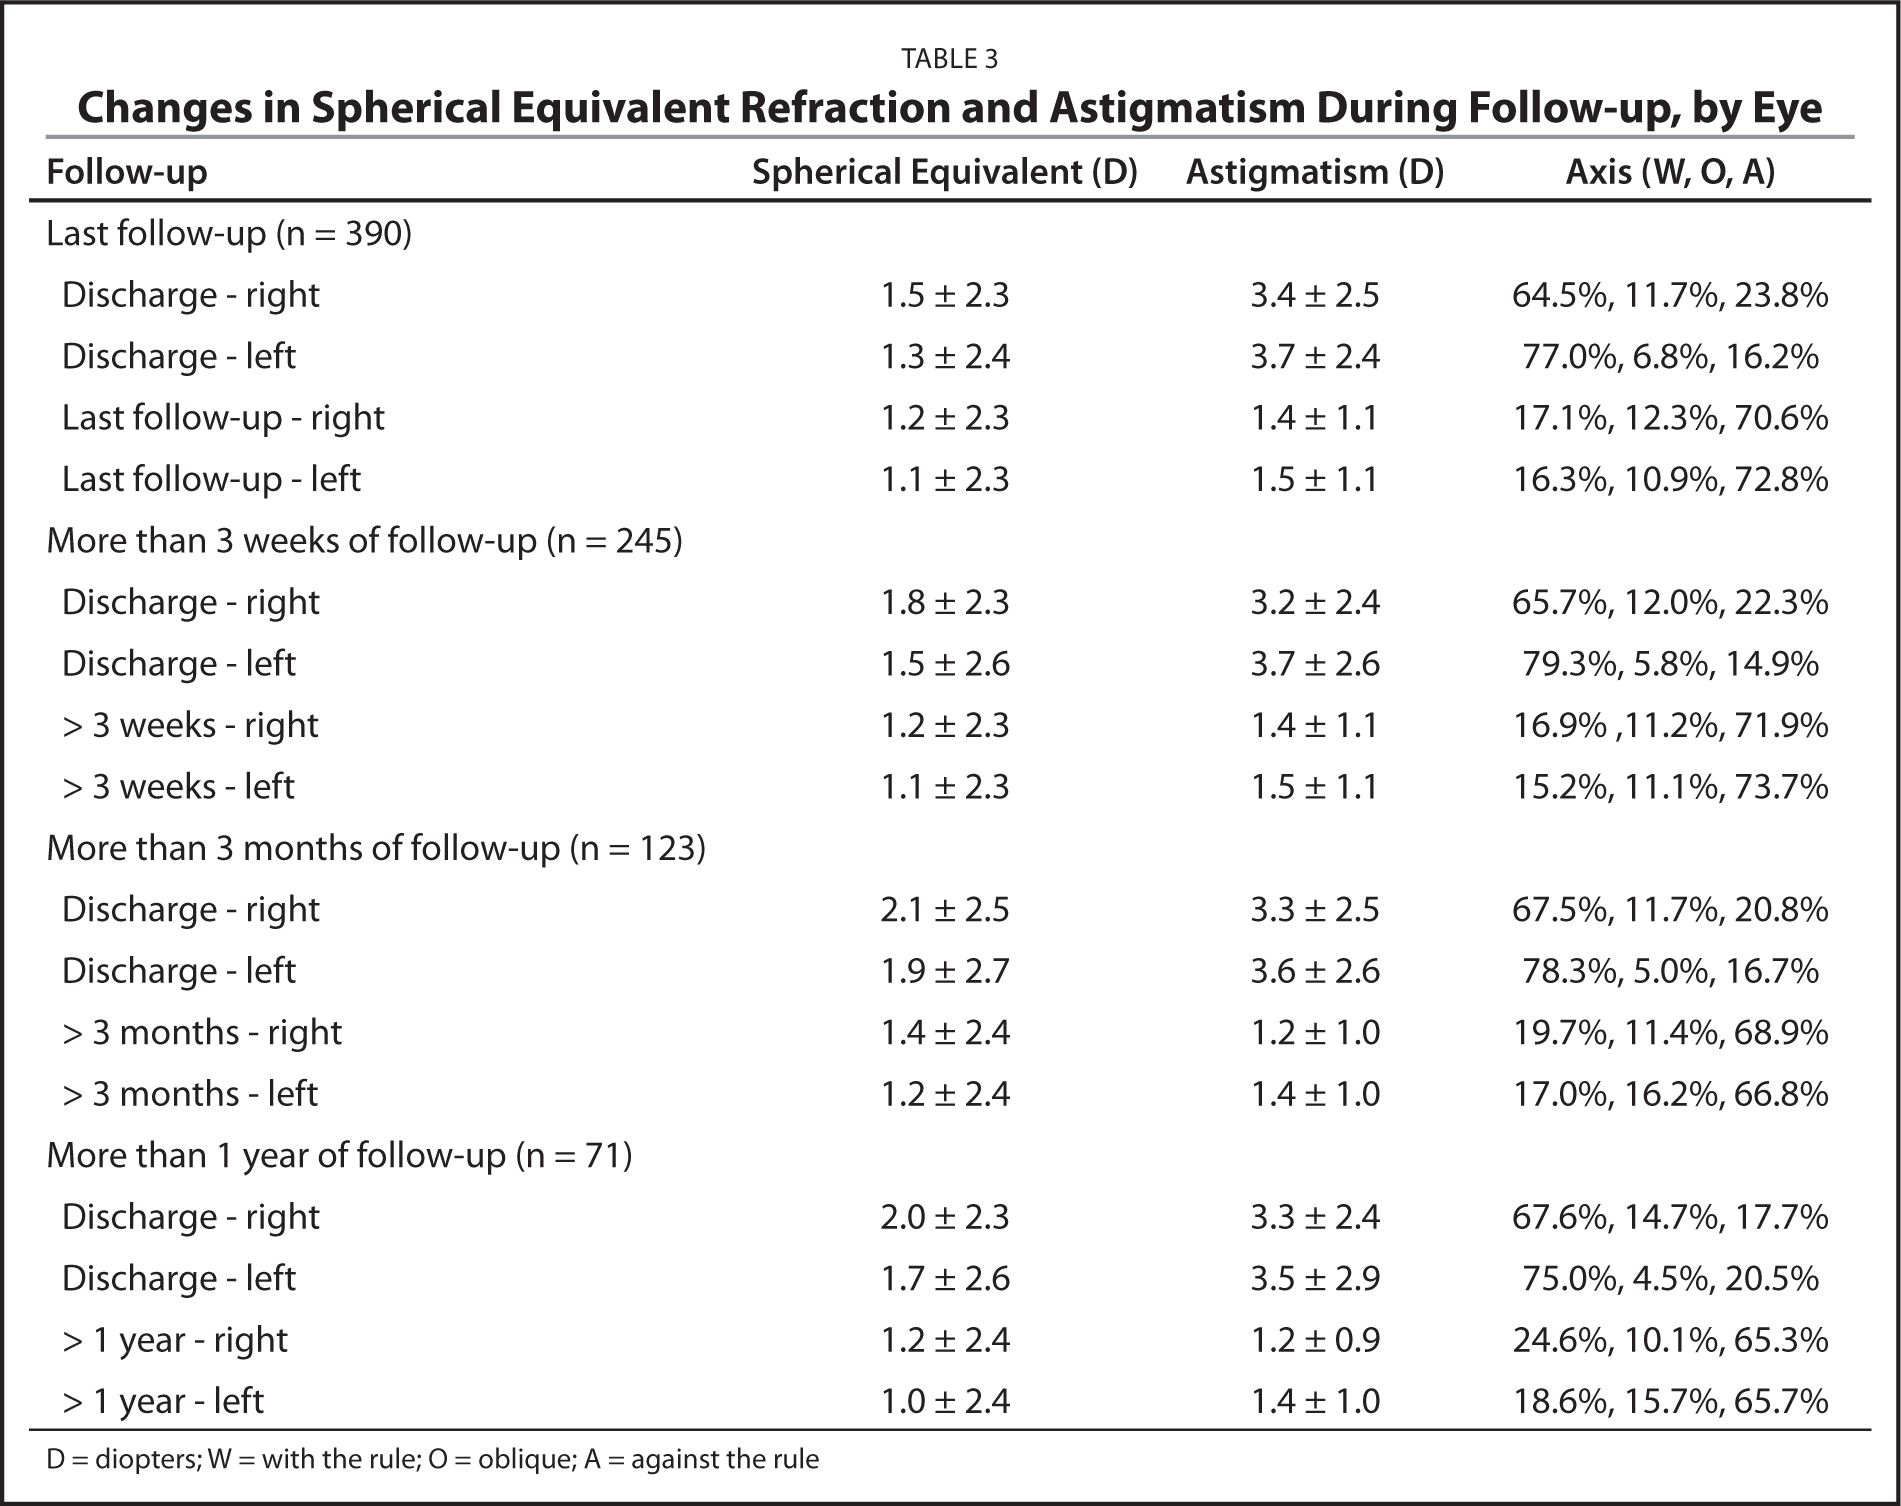 Changes in Spherical Equivalent Refraction and Astigmatism During Follow-up, by Eye